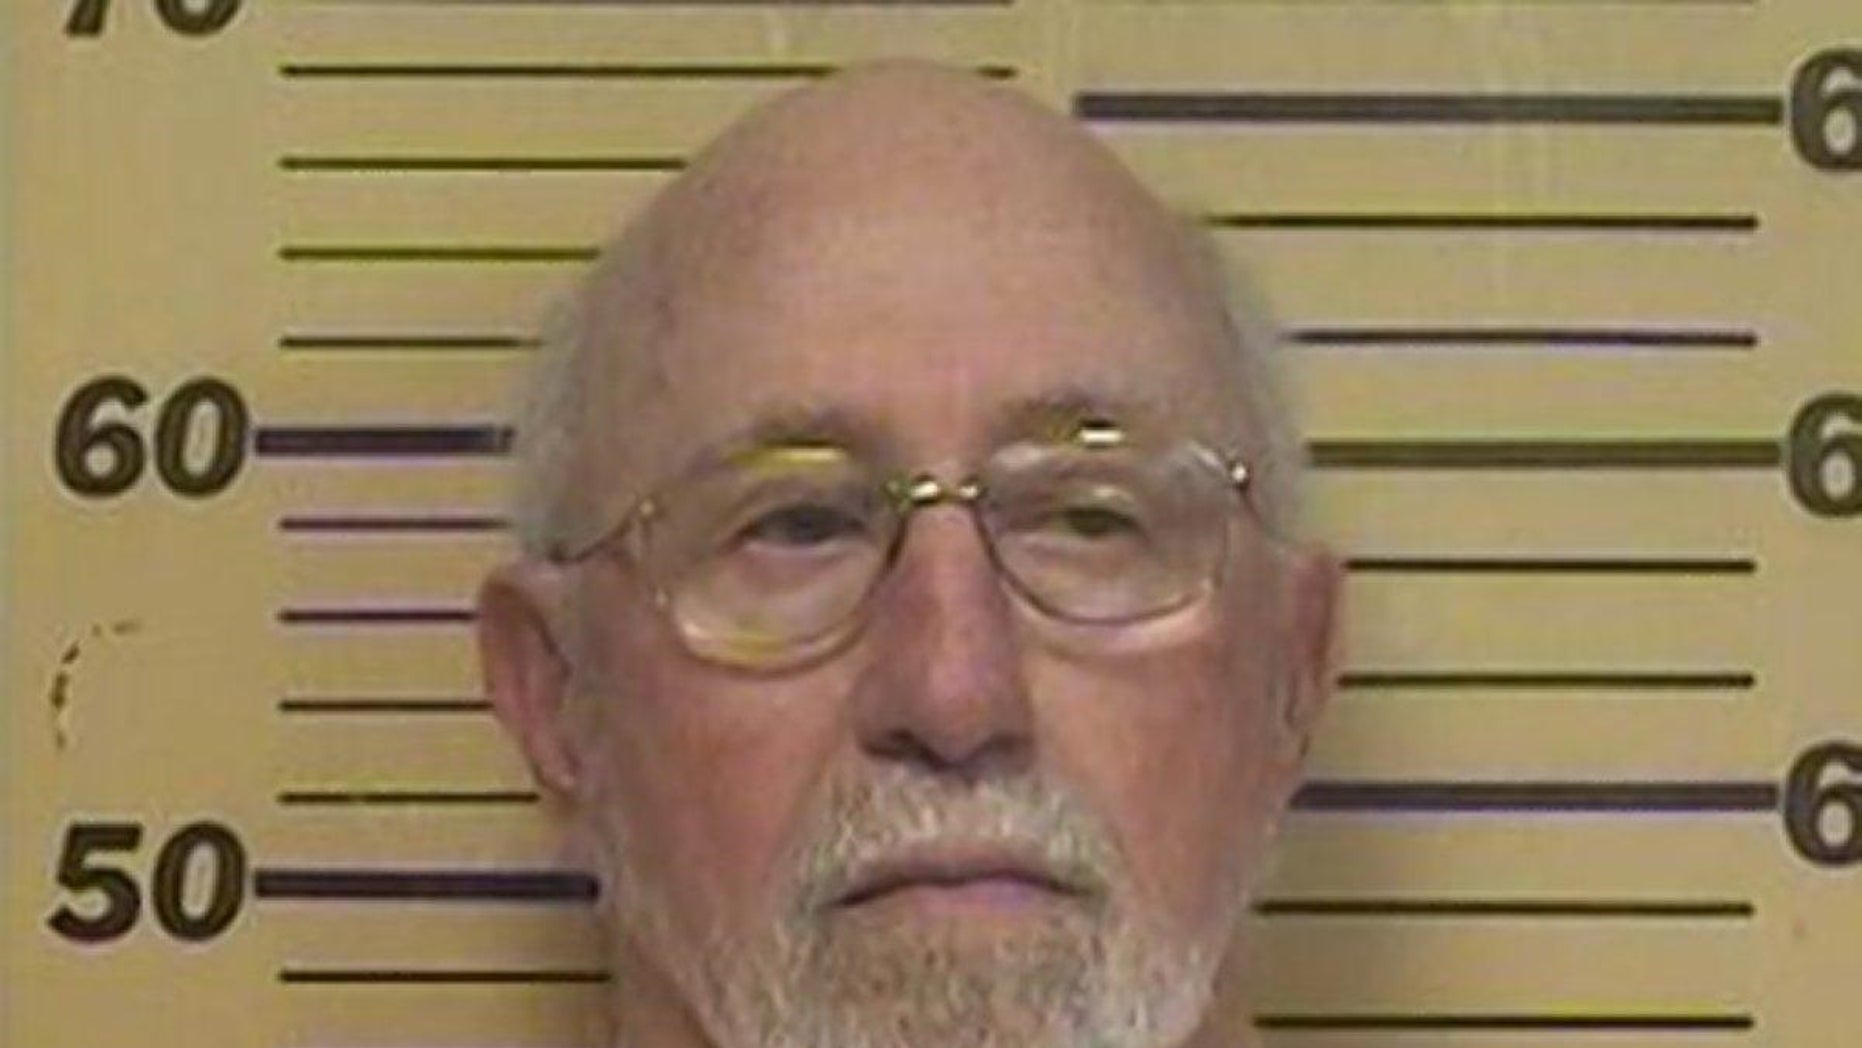 James Allen is accused of raping his 20-year-old stepgranddaughter.